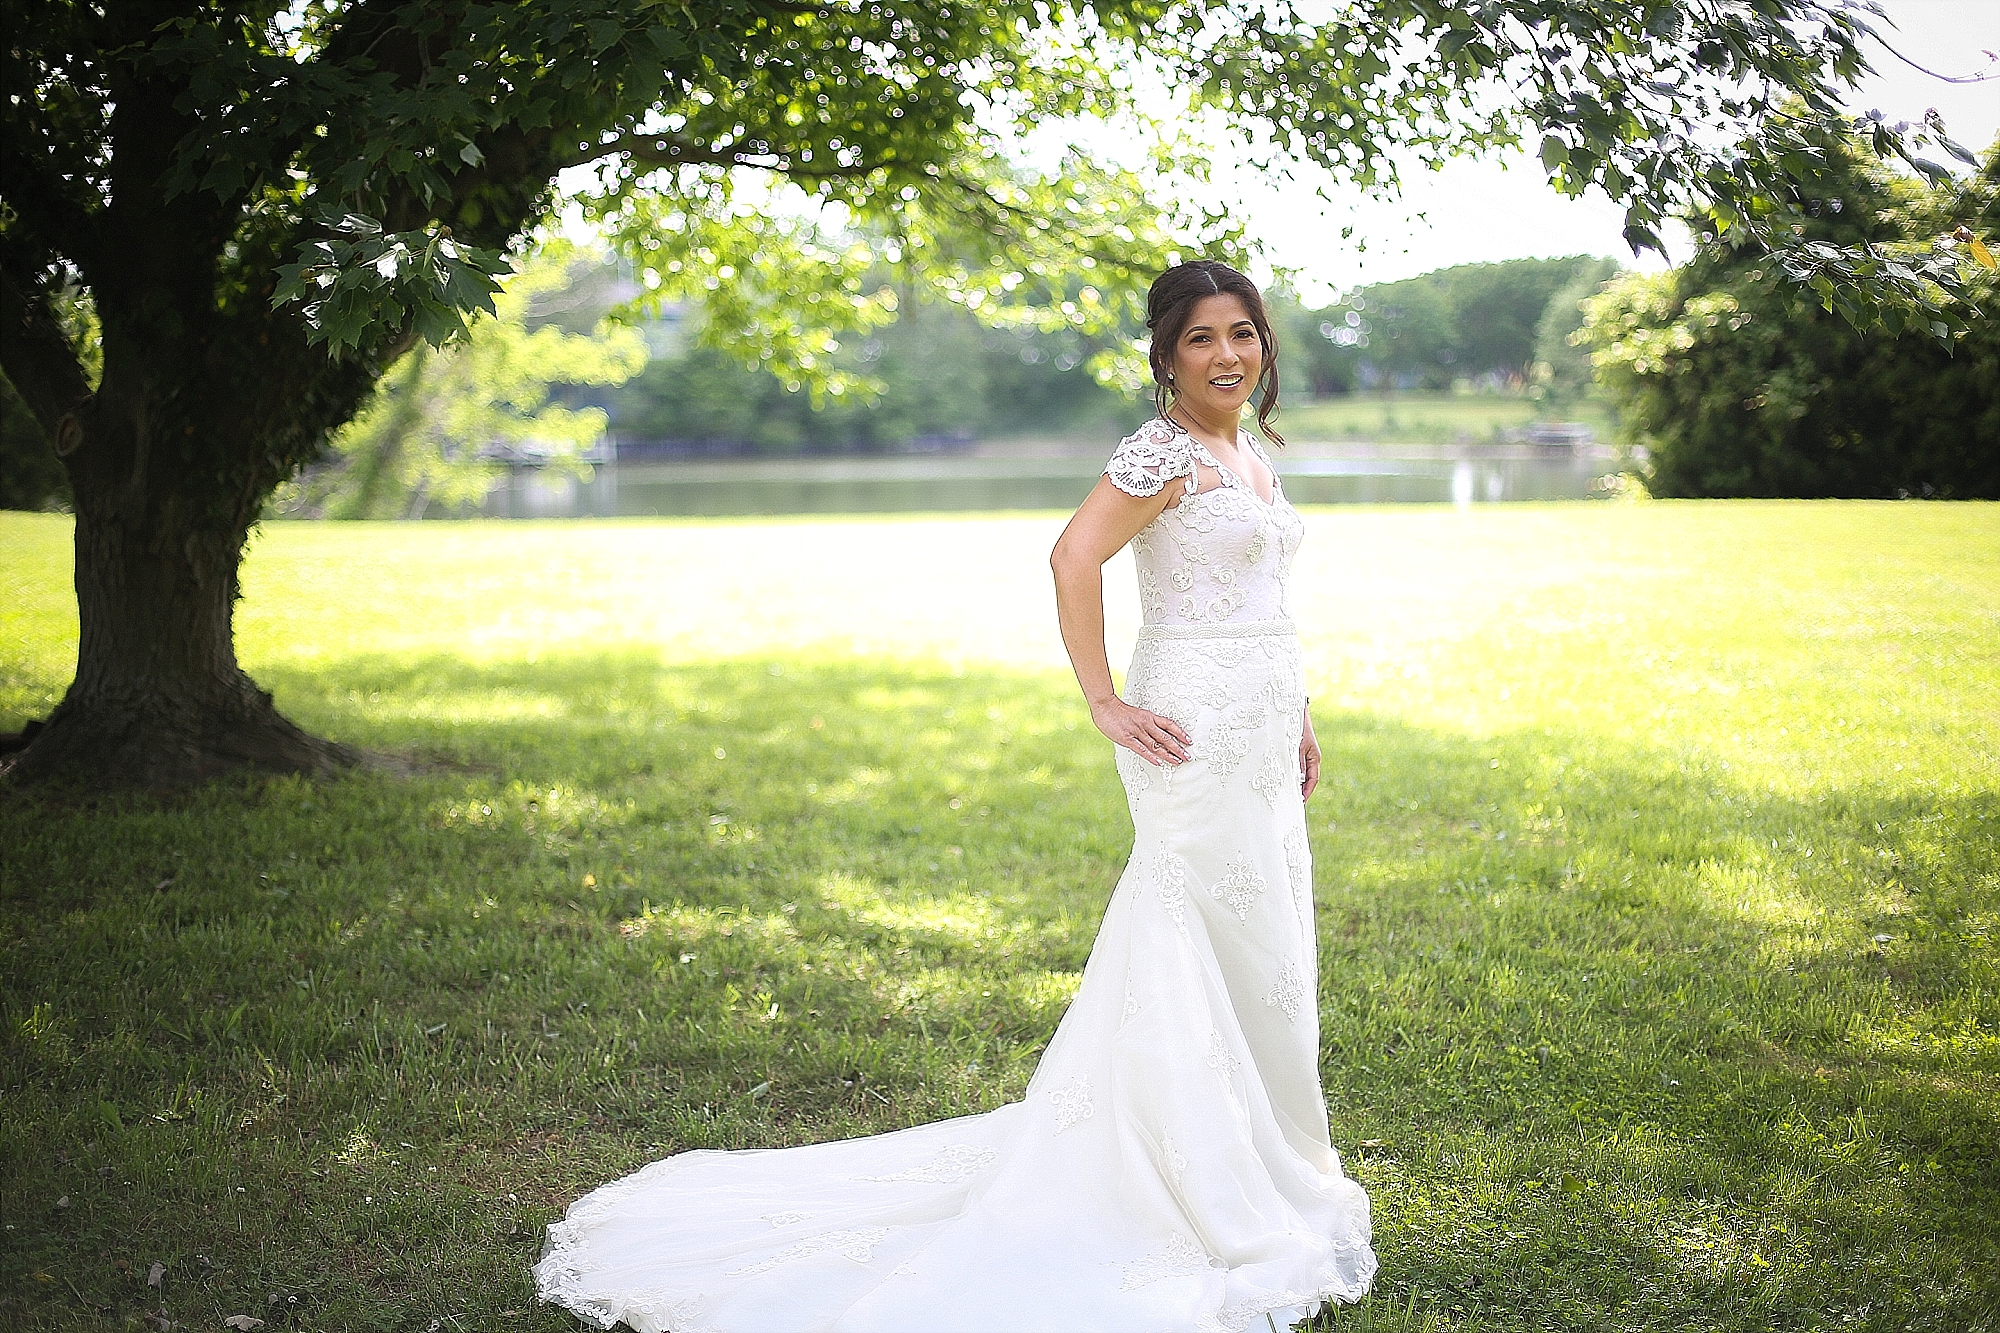 Chesapeake Bay Wedding Photography | Virginia Wedding Photography by Holly Cromer